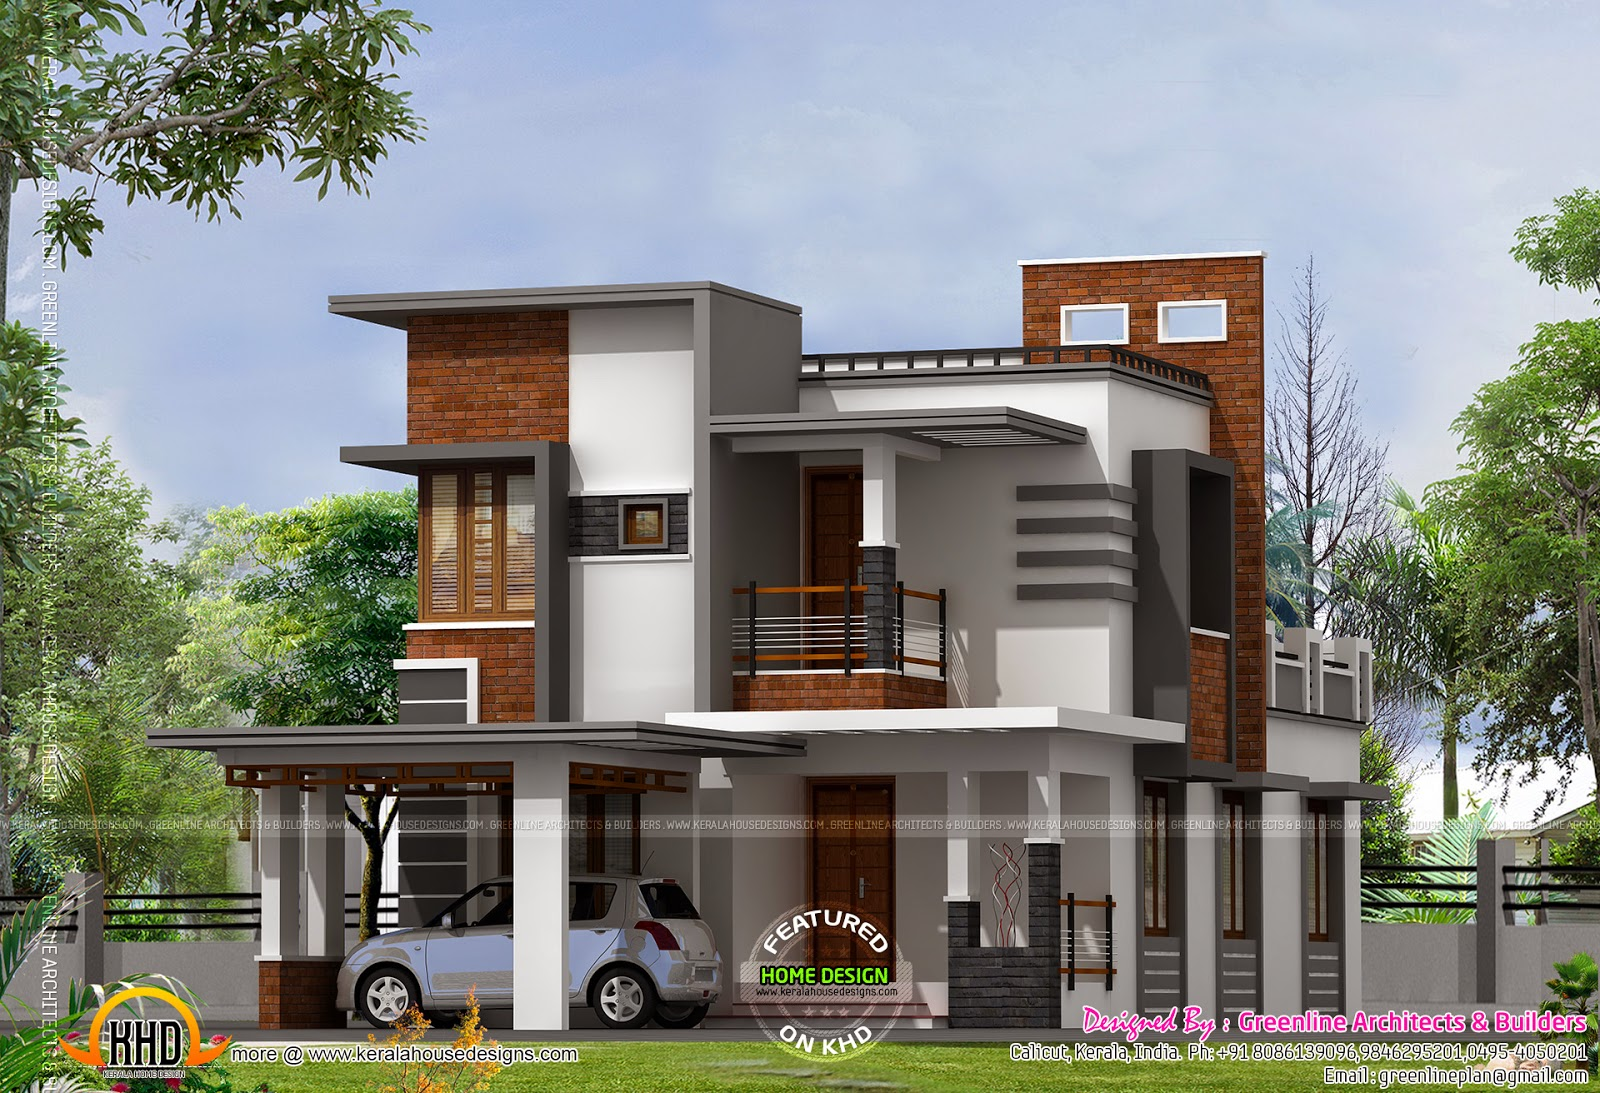 Low cost contemporary house kerala home design and floor for Low cost home construction